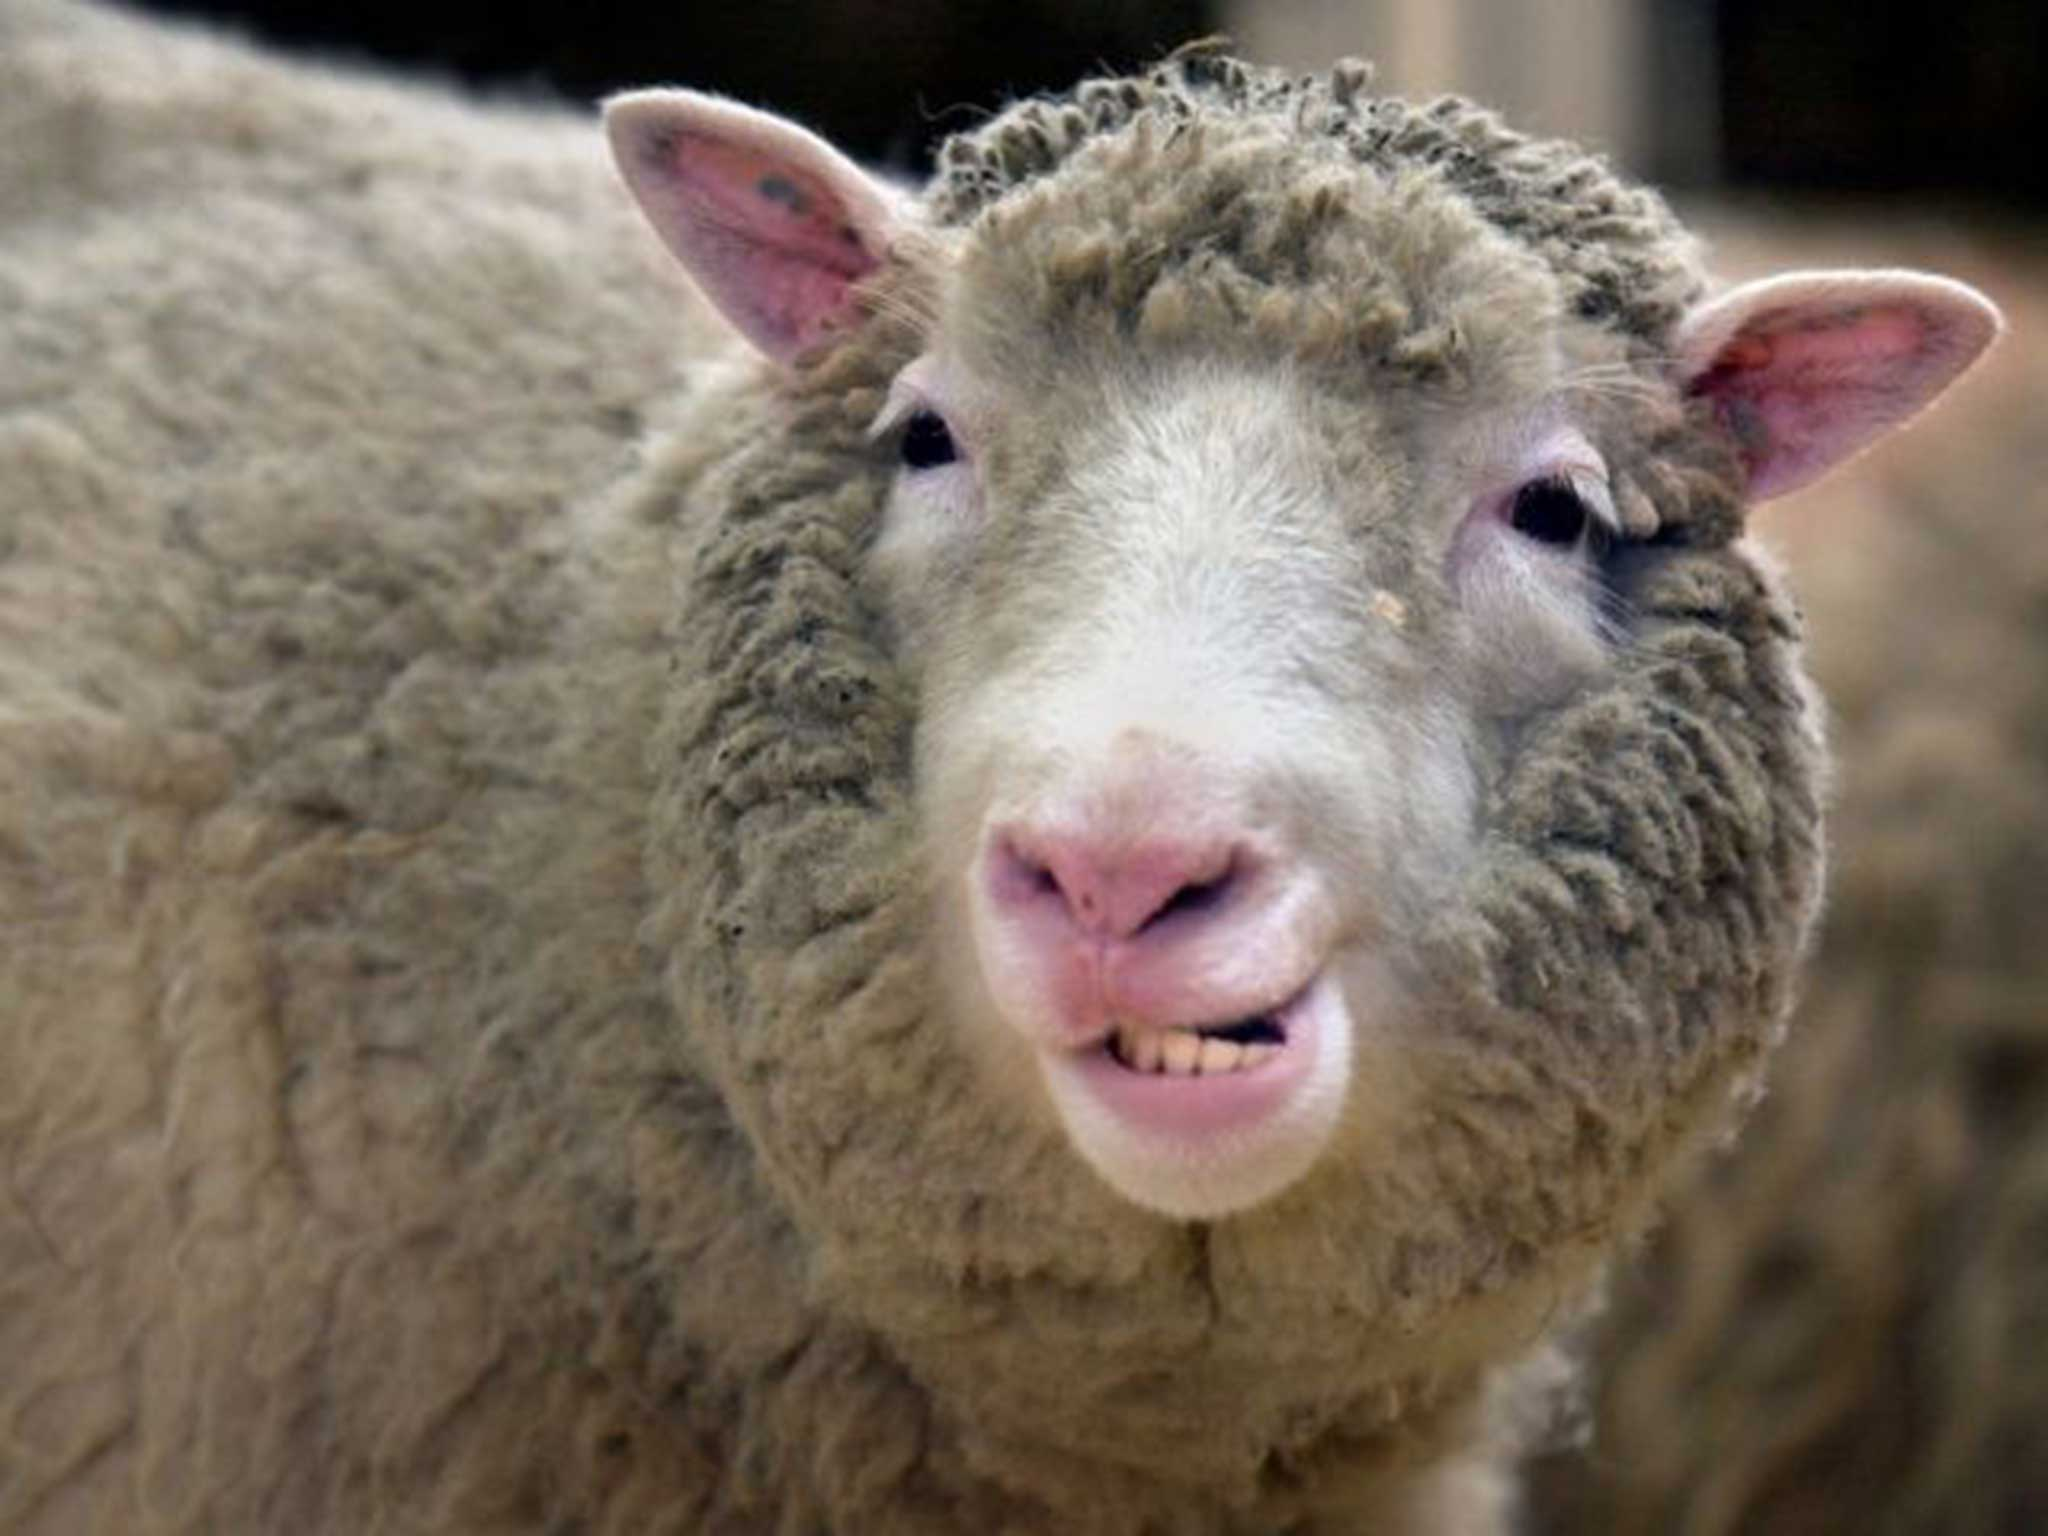 Epigenetics Around the Web: Dolly the sheep and aging. Epigenetics is not genetics. Obstacles to gene editing.